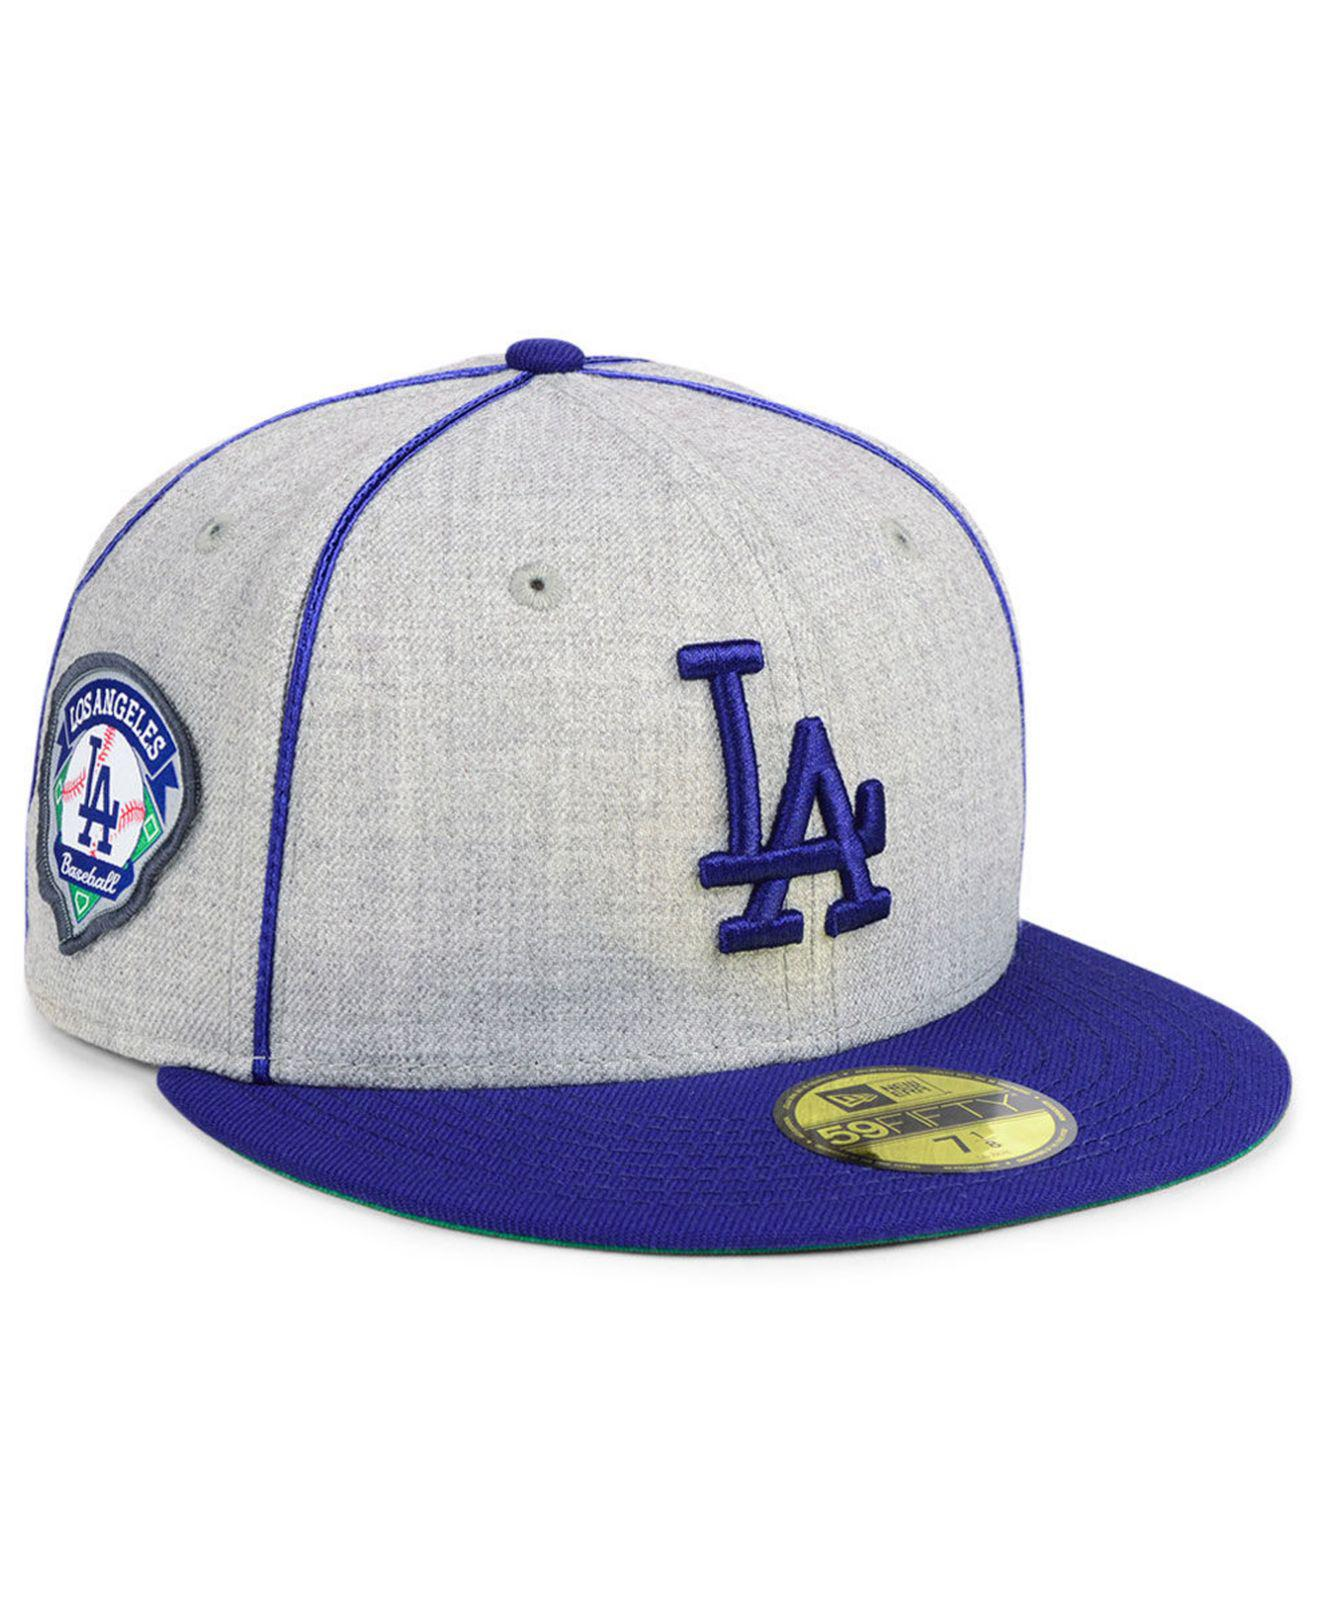 new product 1e983 d3839 Lyst - KTZ Los Angeles Dodgers Stache 59fifty Fitted Cap for Men